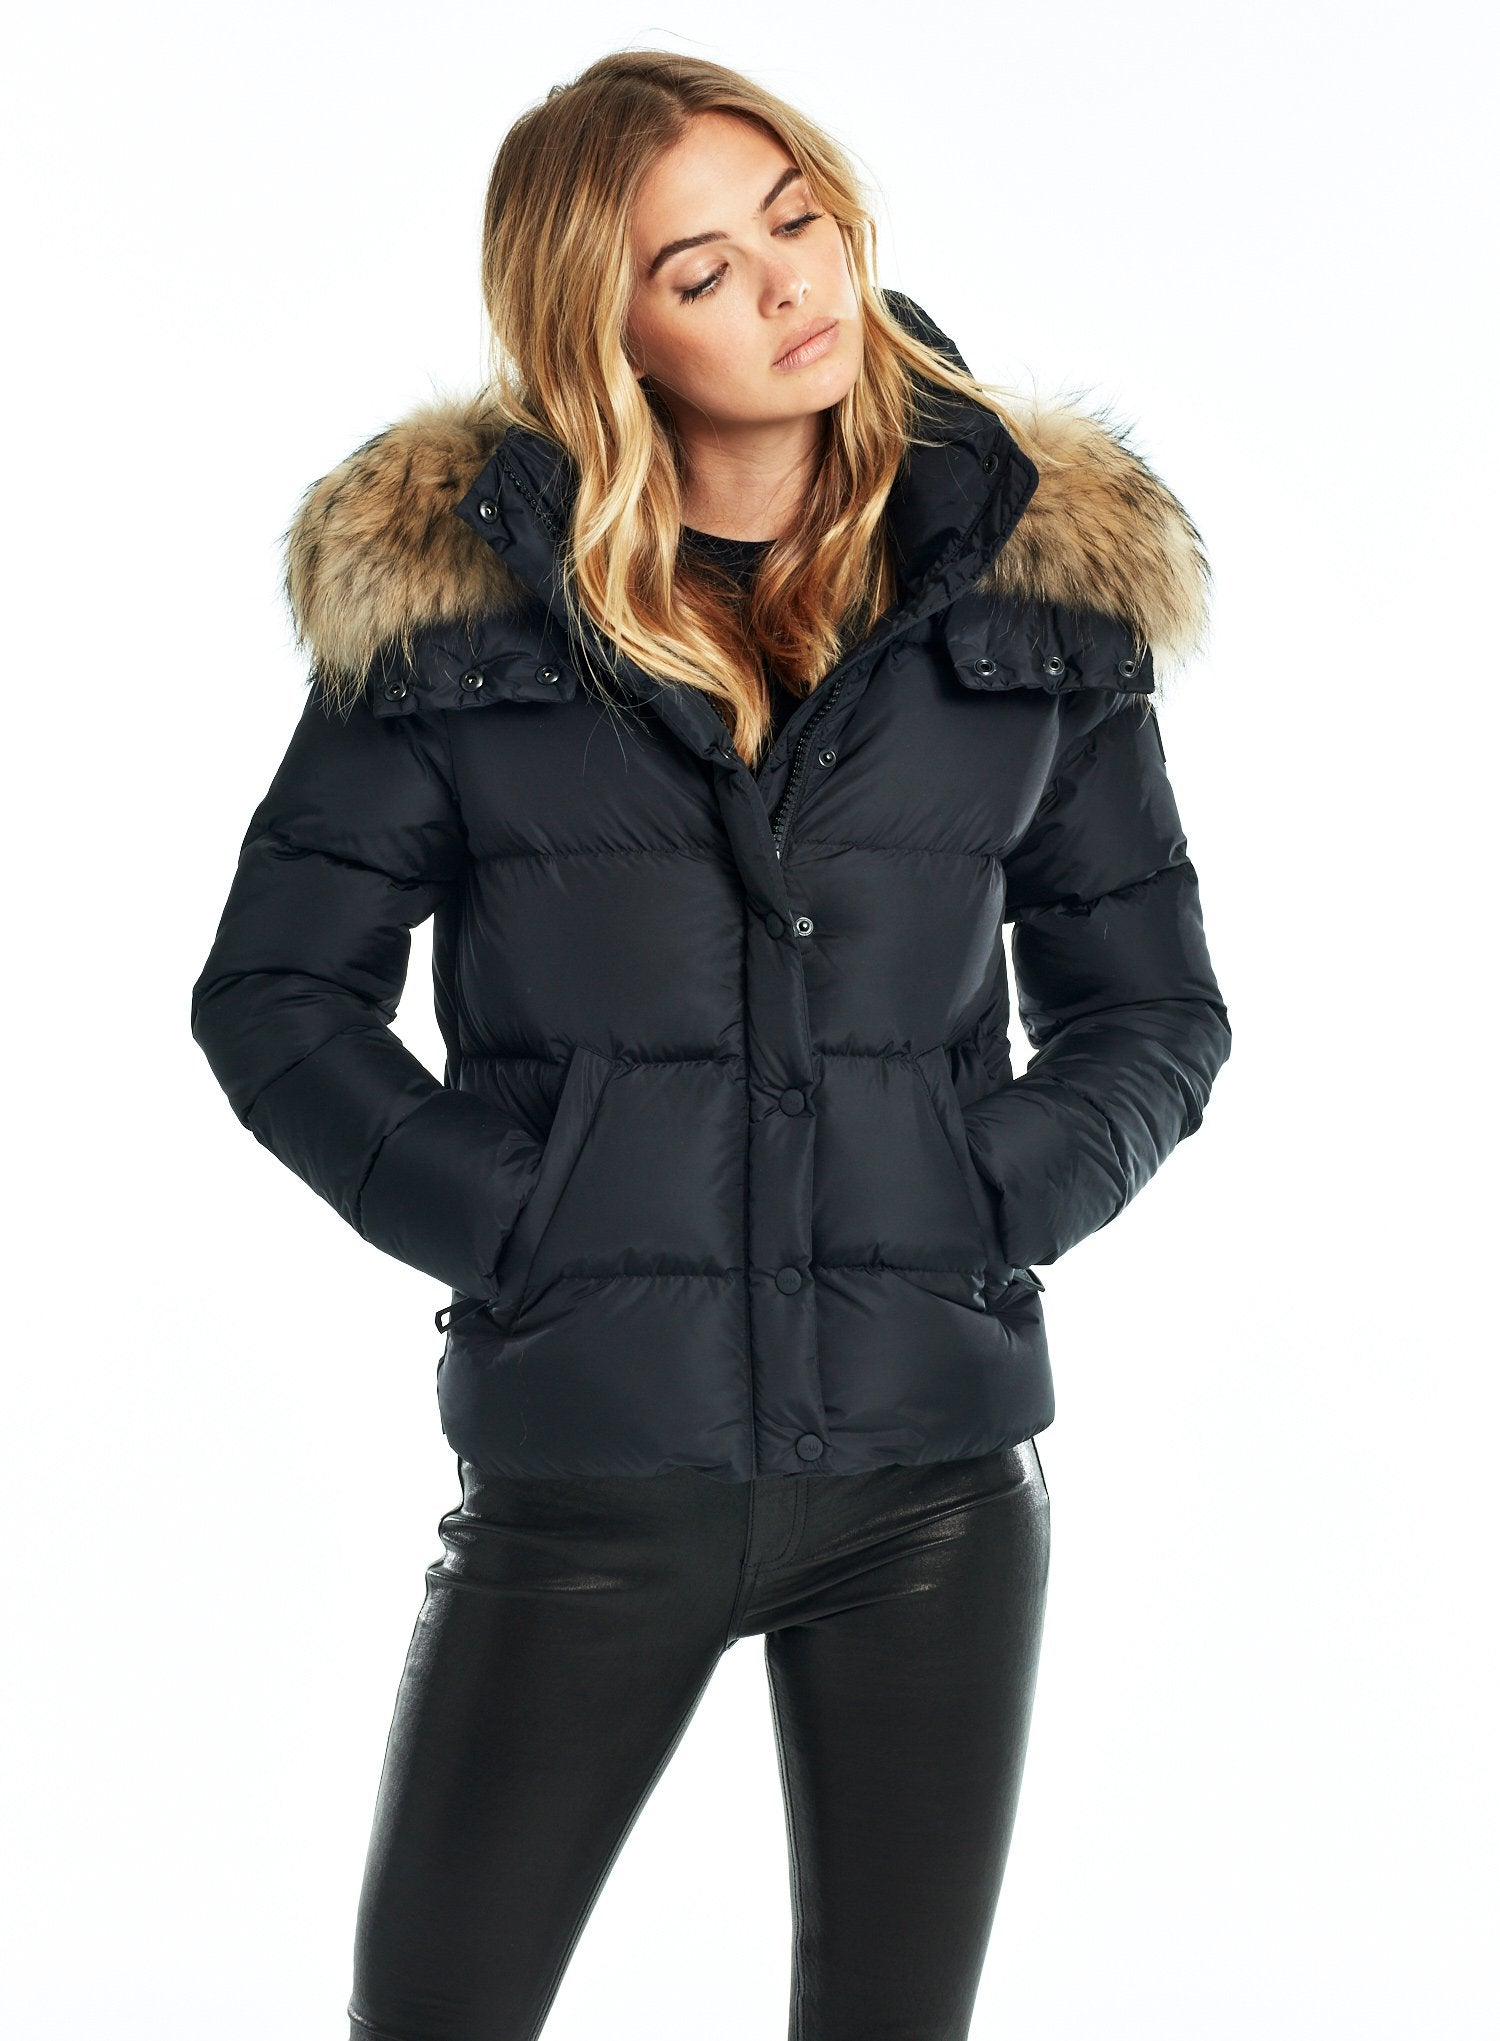 FUR ANNABELLE FUR ANNABELLE - SAM. New York Sam nyc jacket